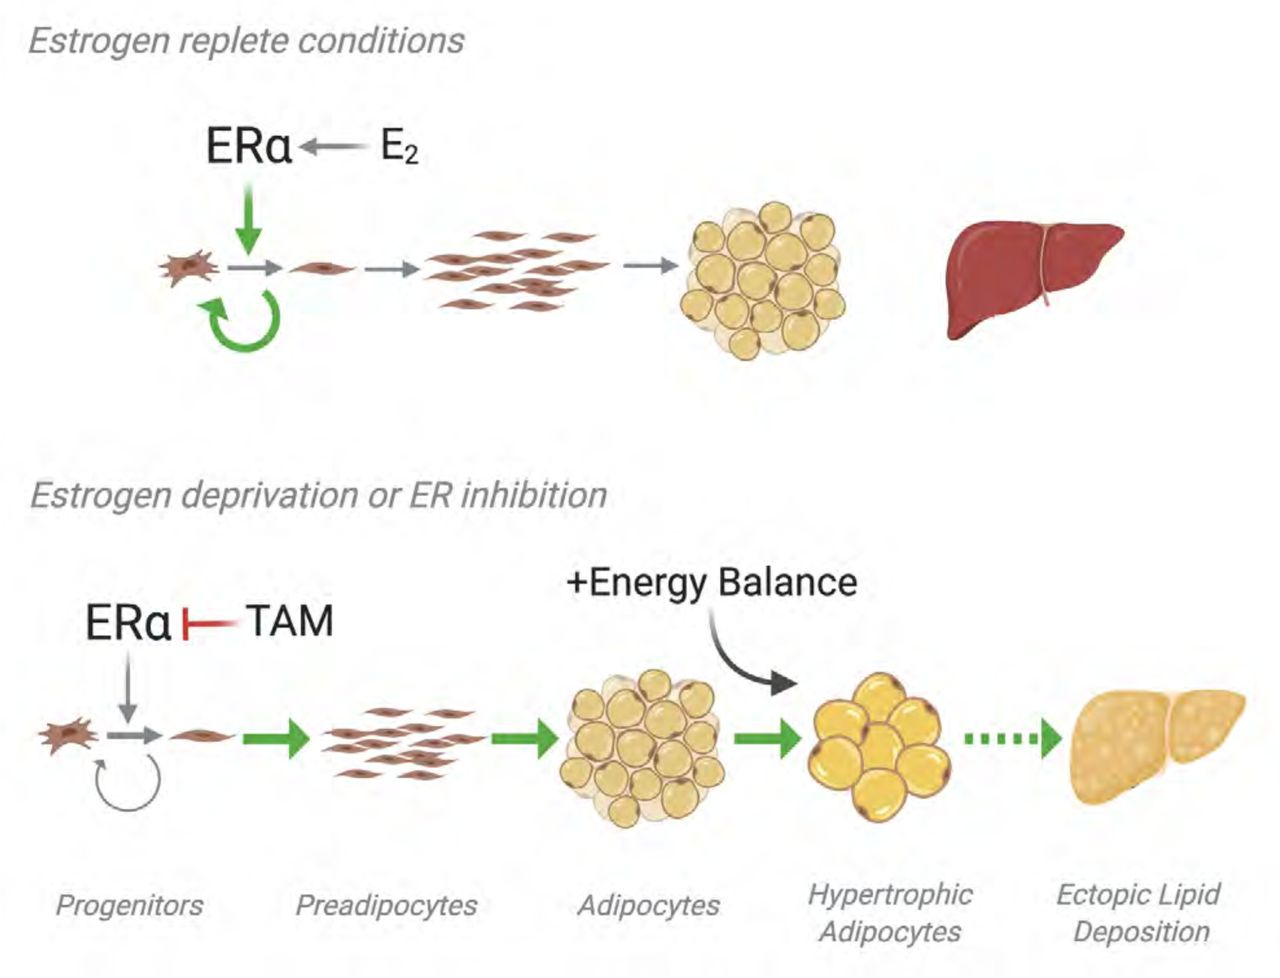 Proposed model of endocrine therapy effects on adipose tissue. ERα signaling maintains adipocyte progenitor pools and inhibits preadipocyte expansion, adipocyte differentiation, and hypertrophy. Disruption of E 2 signaling through either tamoxifen treatment or withdrawal of E 2 depletes the adipocyte progenitor pool causing adipocyte hypertrophy consistent with a phenotype that precedes insulin resistance and the development of type 2 diabetes.